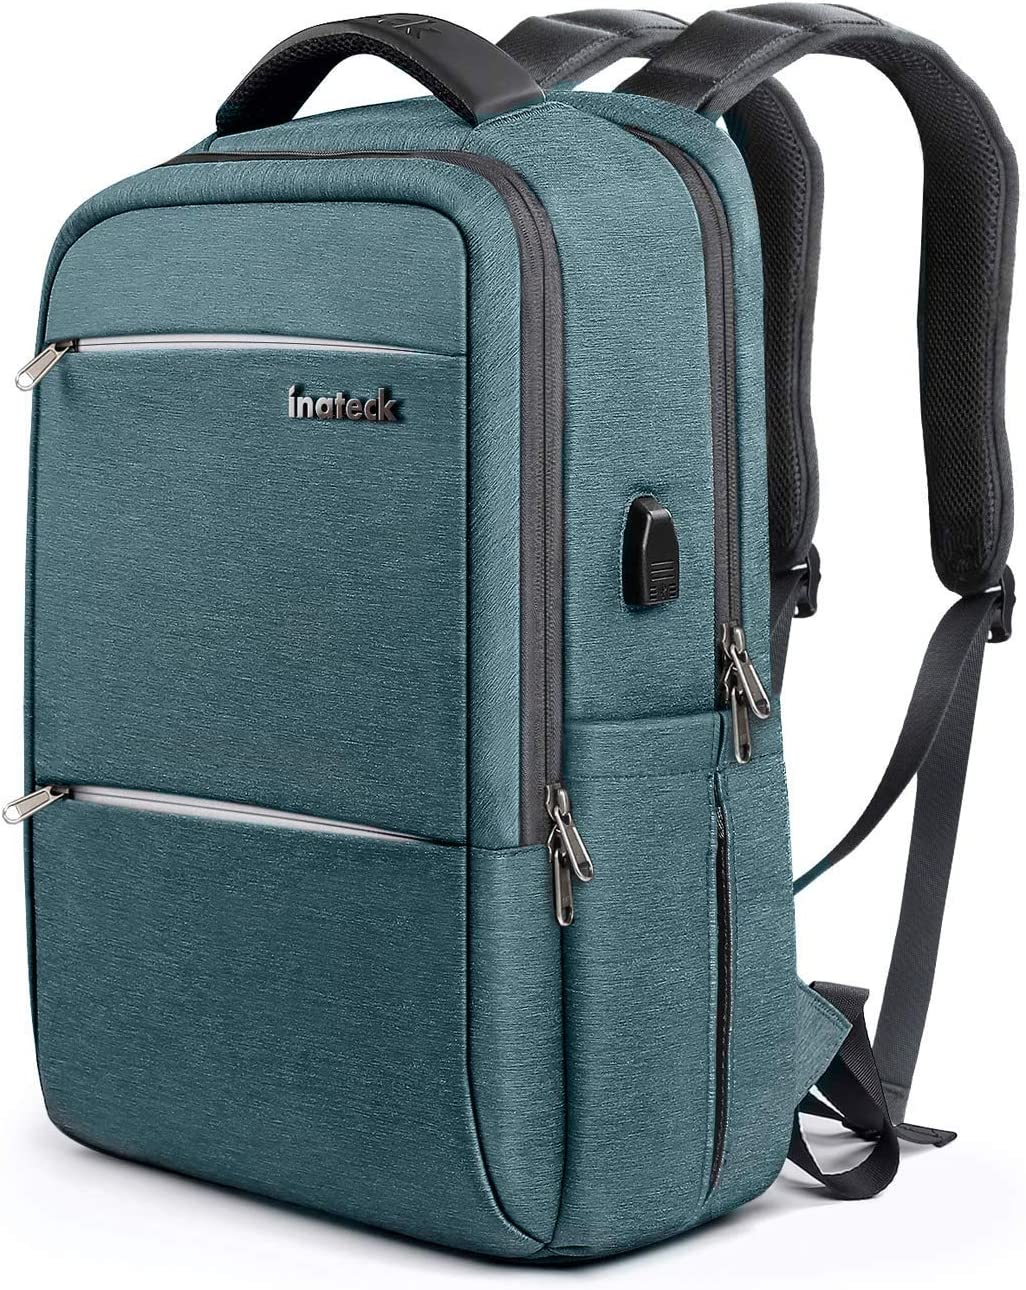 Inateck Anti-Theft best rucksack for commuting